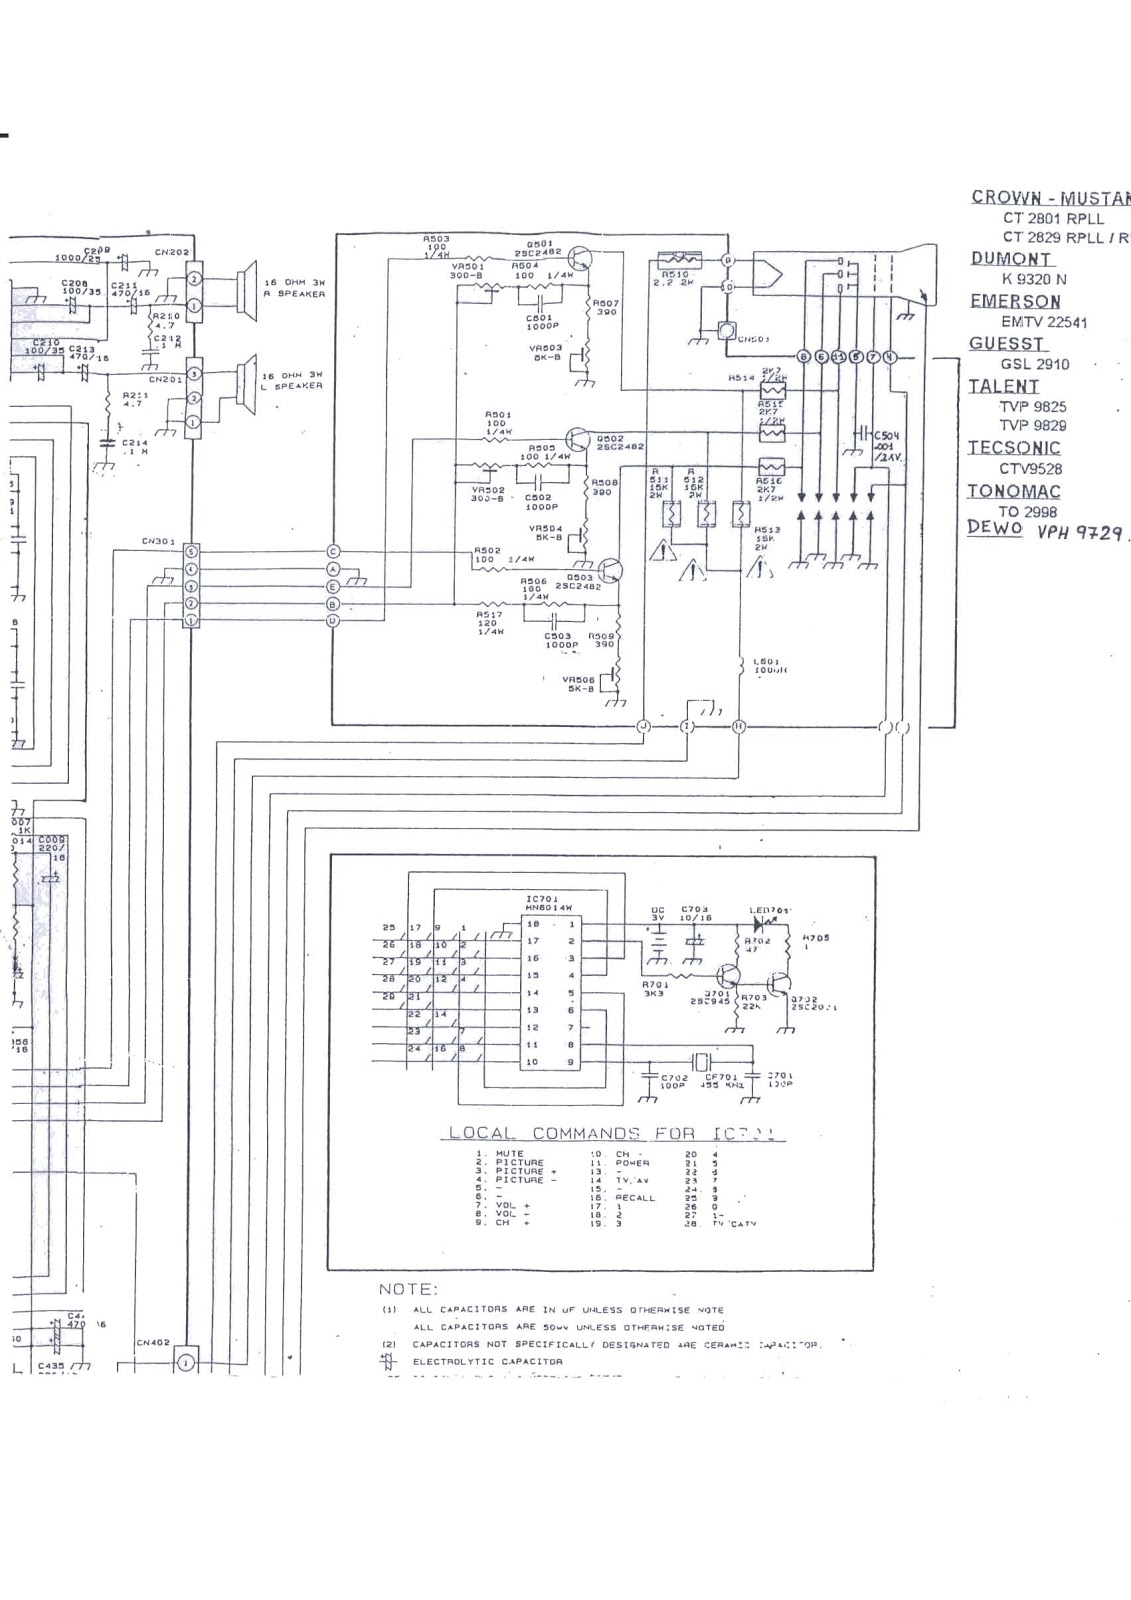 medium resolution of awesome ford 7710 tractor wiring diagram photos best image diagram wiring diagram ford